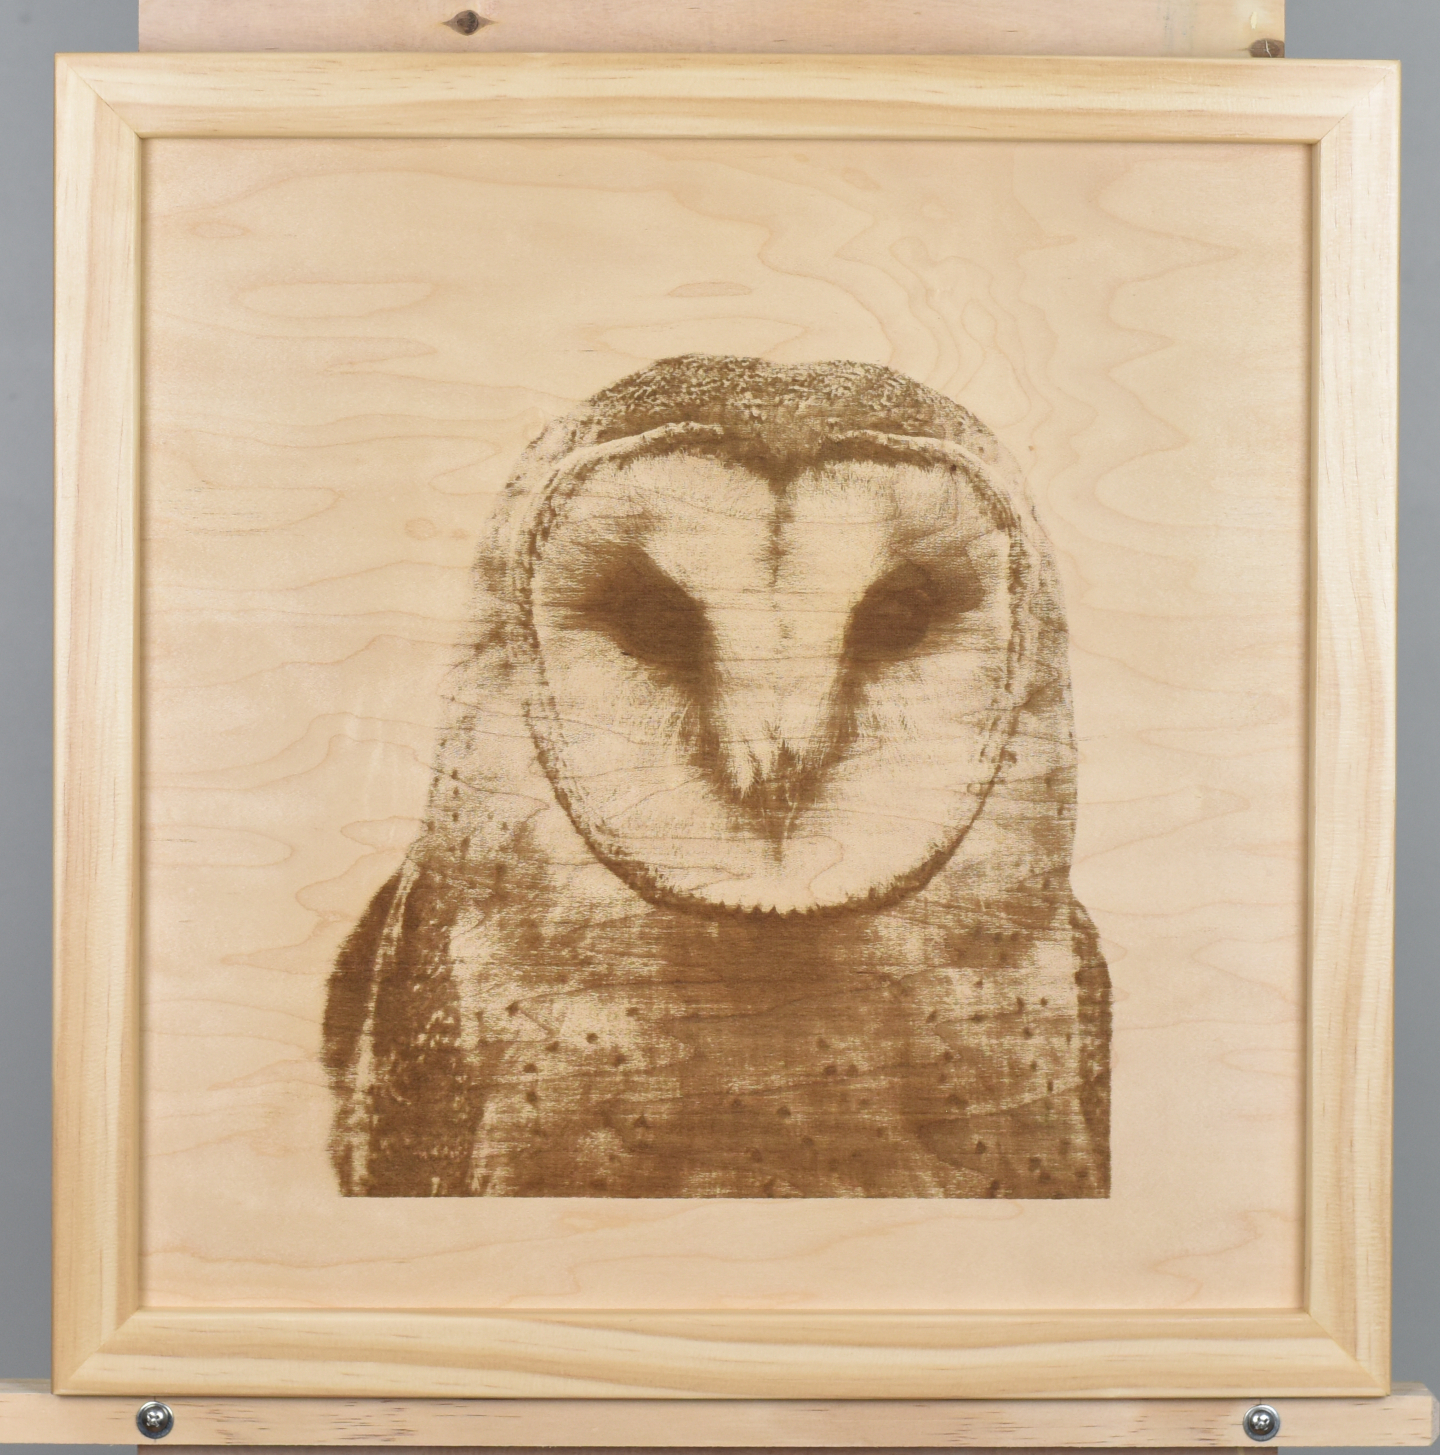 A wood burning (digital pyrograph) of a barn owl made from a photograph by Mark Broadhurst.